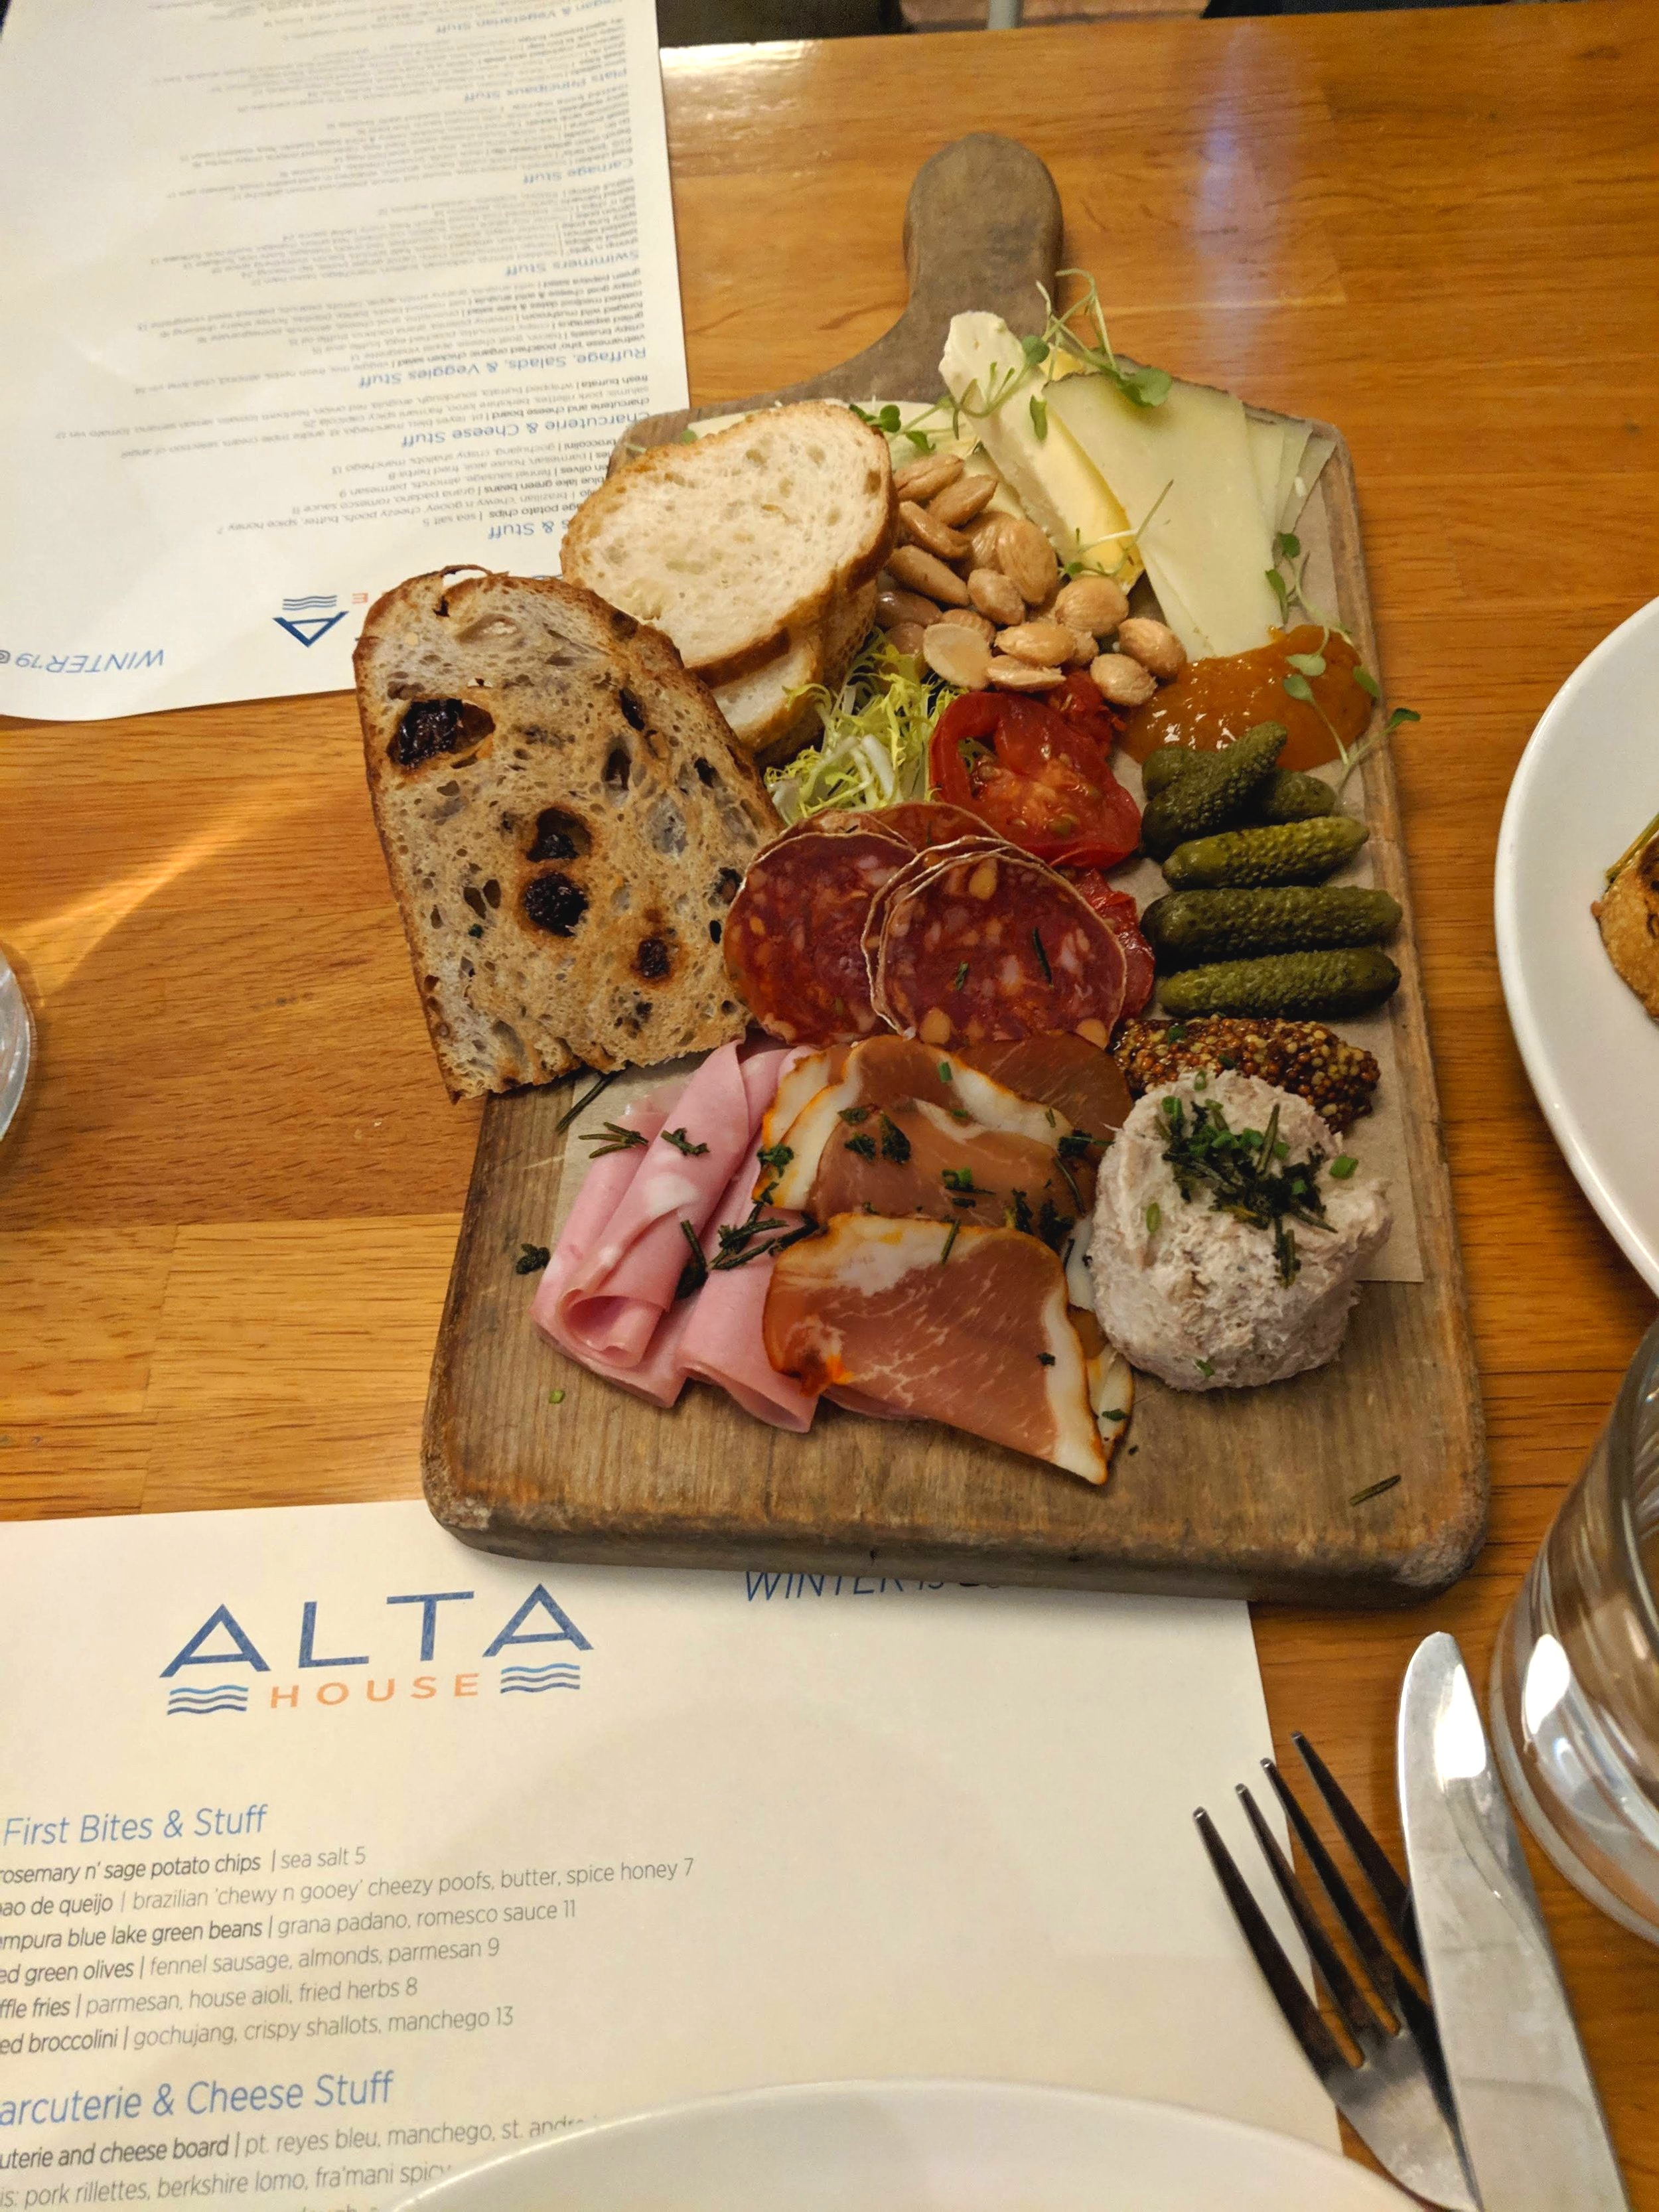 Alta House nibbles